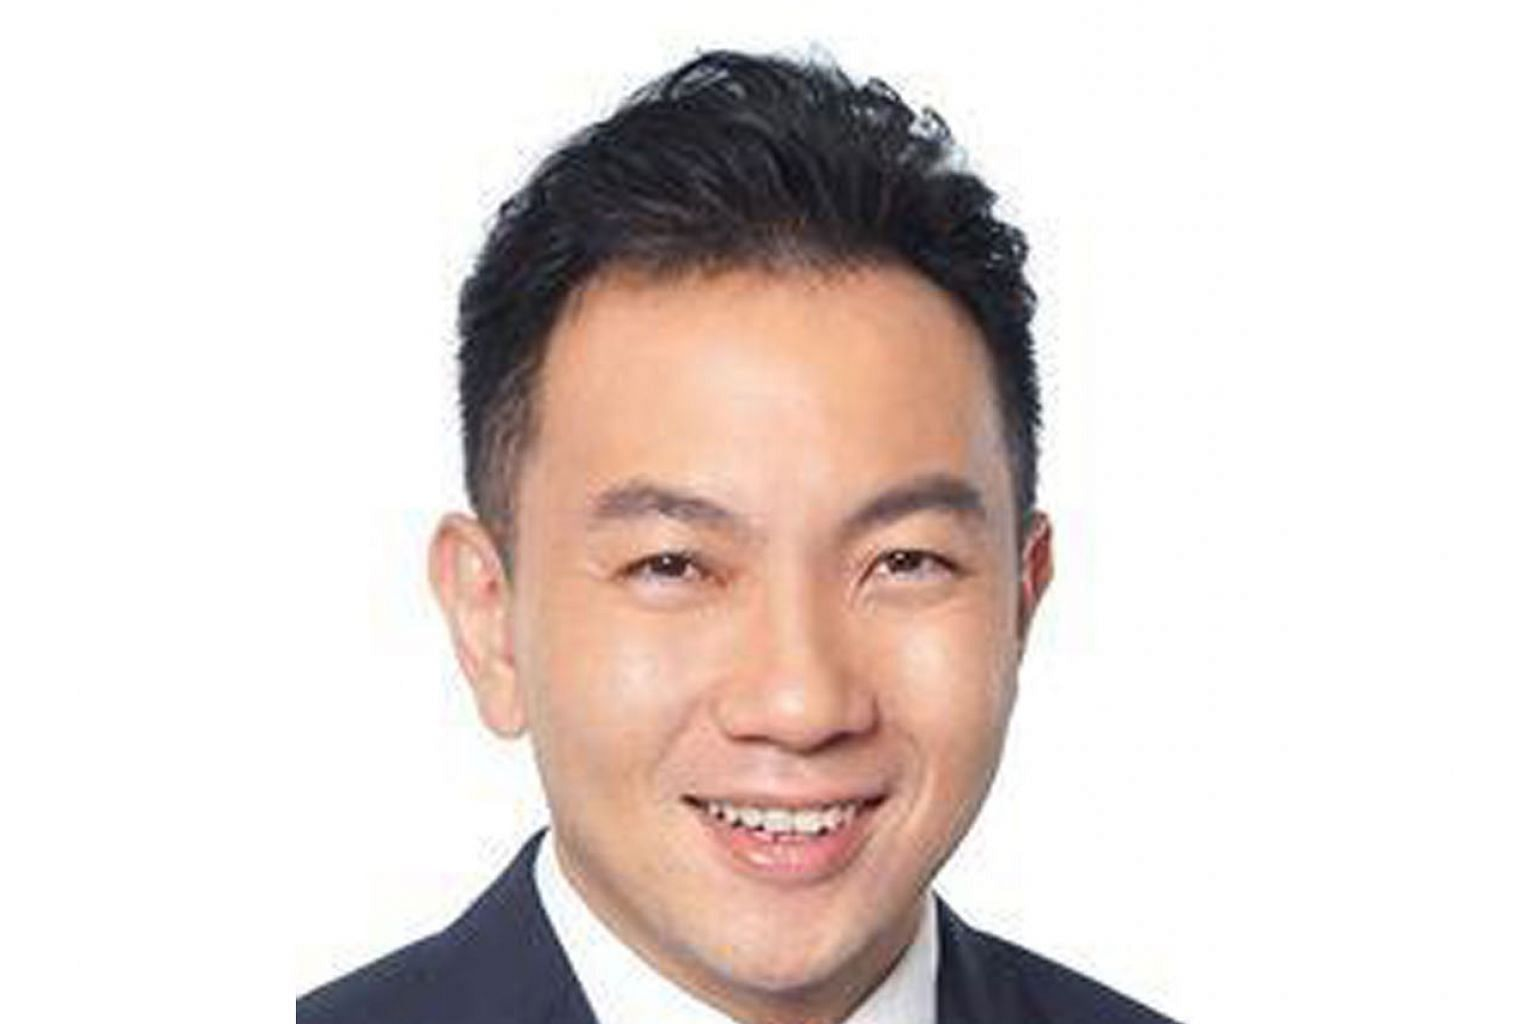 """The coroner said Dr Sean Ng Yung Chuan's (above) treatment of his patient """"goes beyond mere human error"""". The doctor was found to have failed to make detailed notes or hand his patient over to another specialist when he planned to travel after operat"""